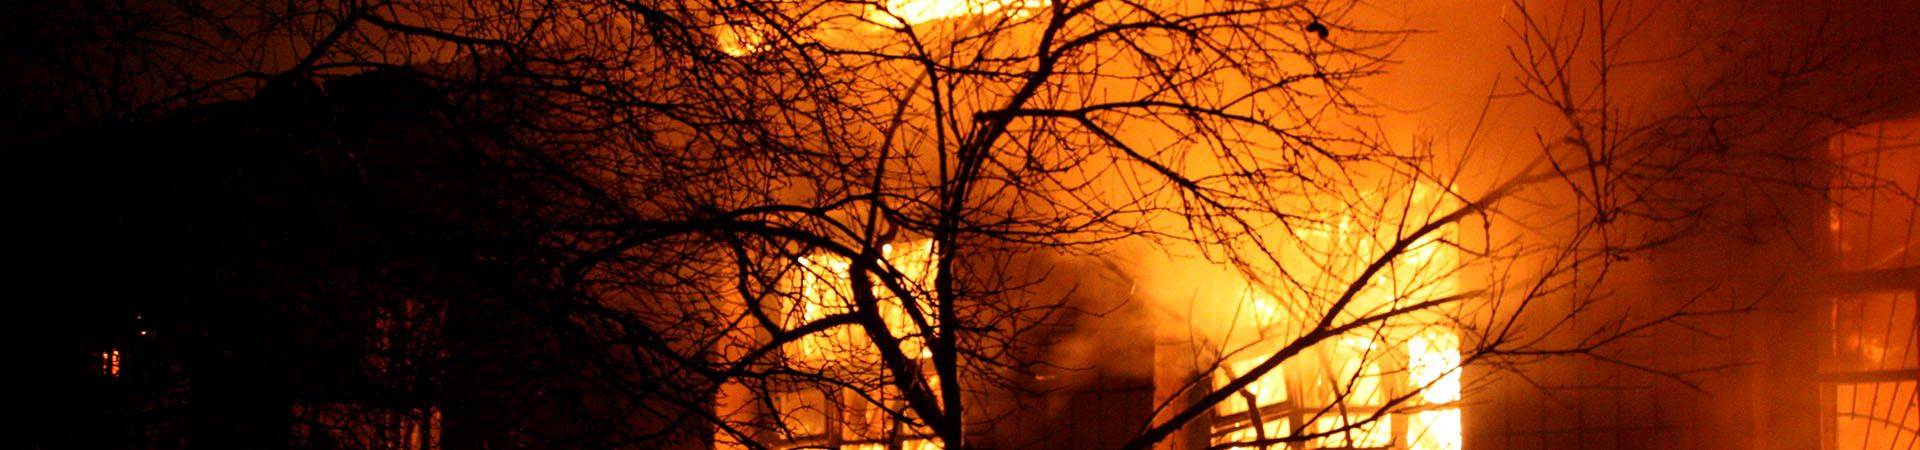 Fire Damage Restoration in Chicago, Evanston IL, Northbrook, Park Ridge